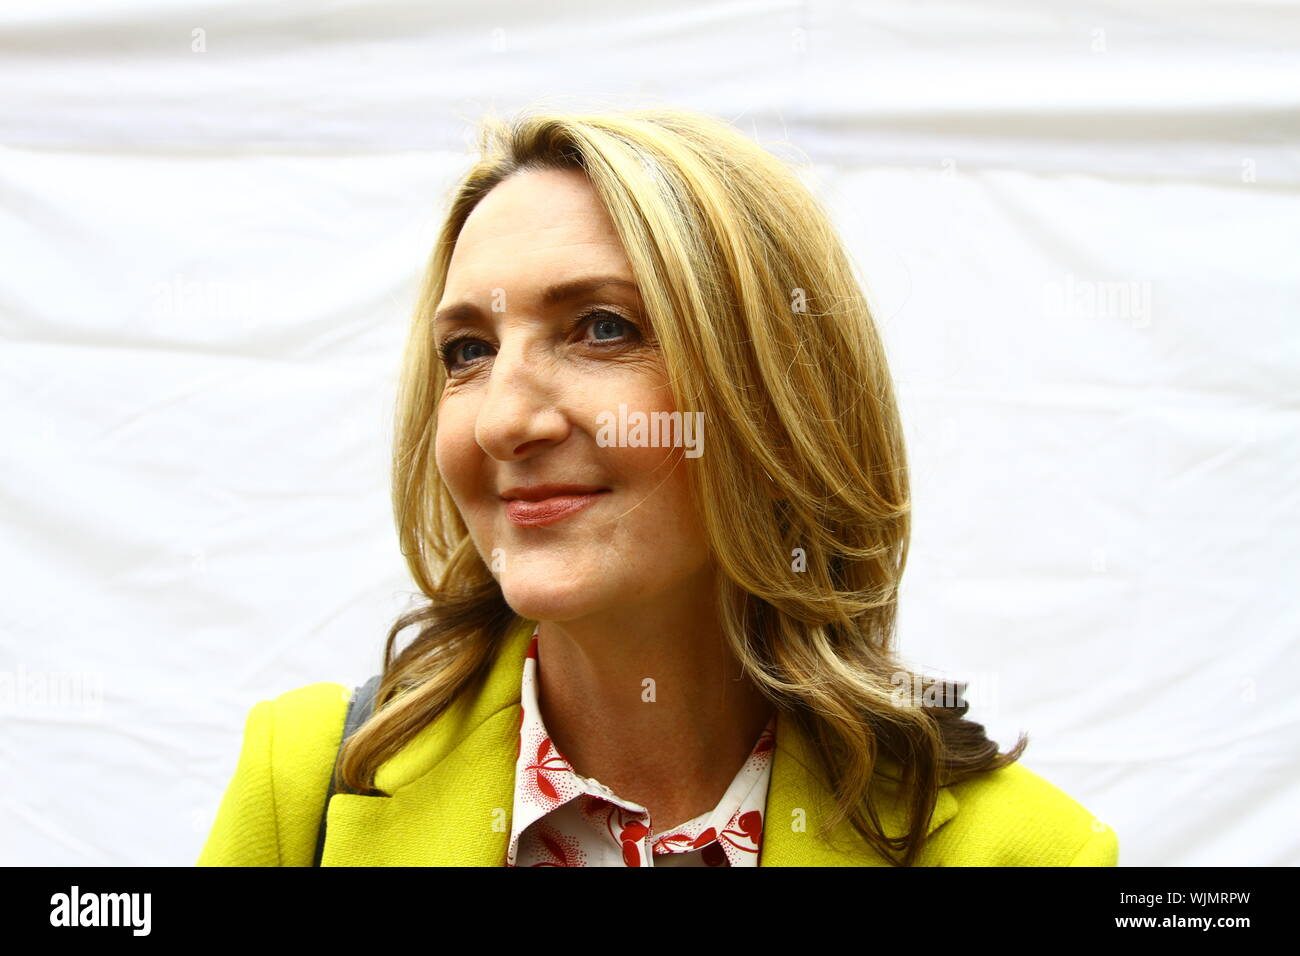 VICTORIA DERBYSHIRE AT COLLEGE GREEN, WESTMINSTER, UK ON 3RD SEPTEMBER 2019. JOURNALISTS. BBC PRESENTERS. VICTORIA DERBYSHIRE SHOW. MEDIA. TELEVISION. BROADCASTERS. Stock Photo